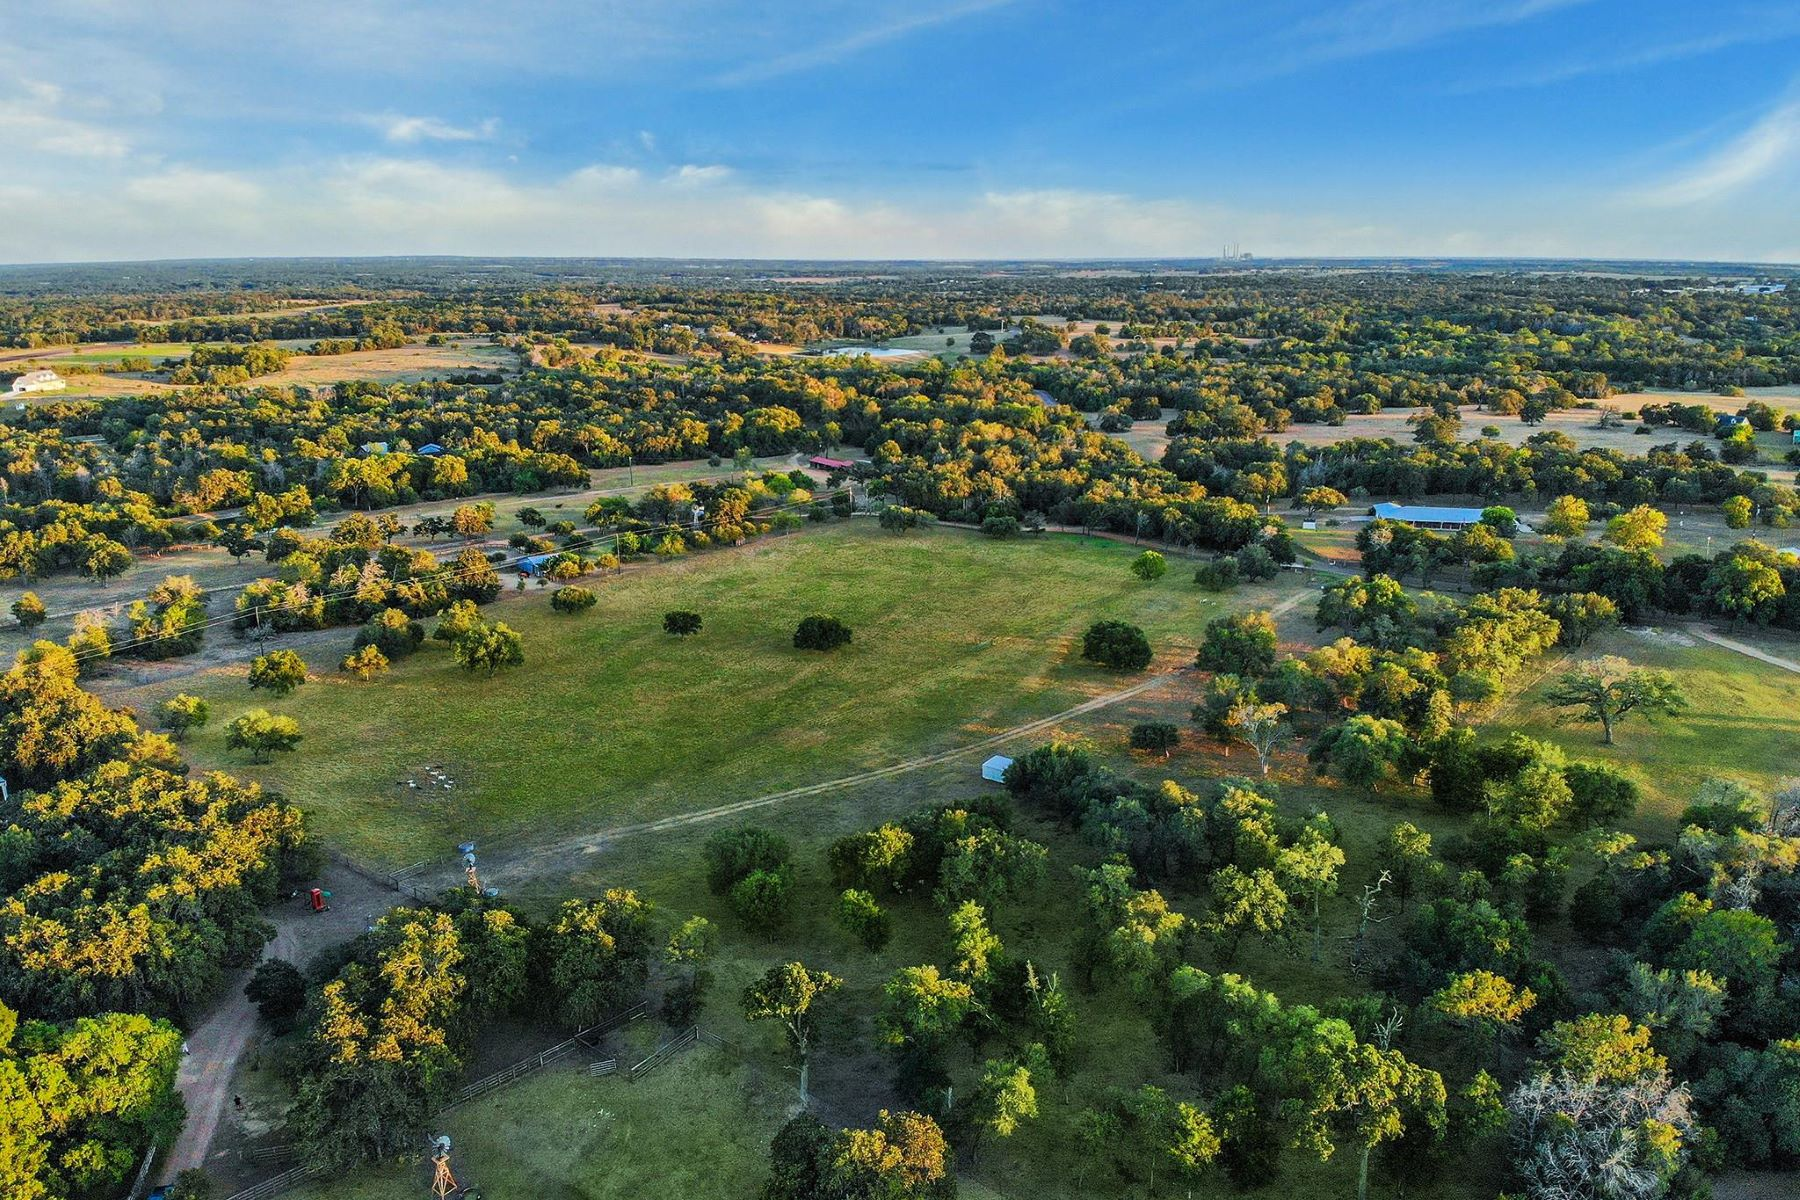 Vineyard Real Estate for Sale at 000 Florida Chapel Road Round Top, Texas 78954 United States